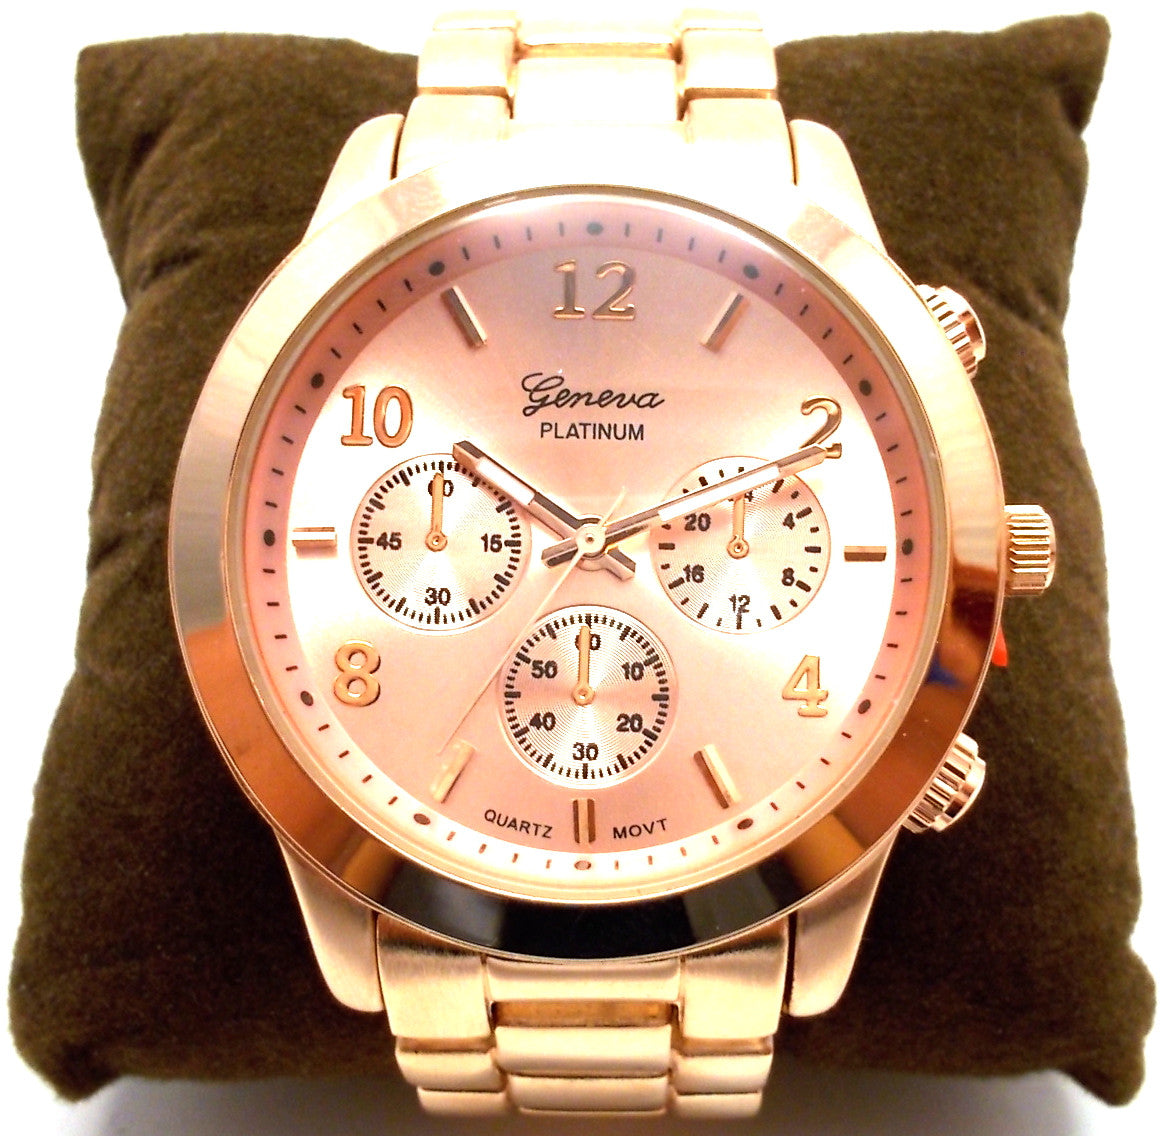 Metal Oversized Geneva Platinum Watch- Rose Gold